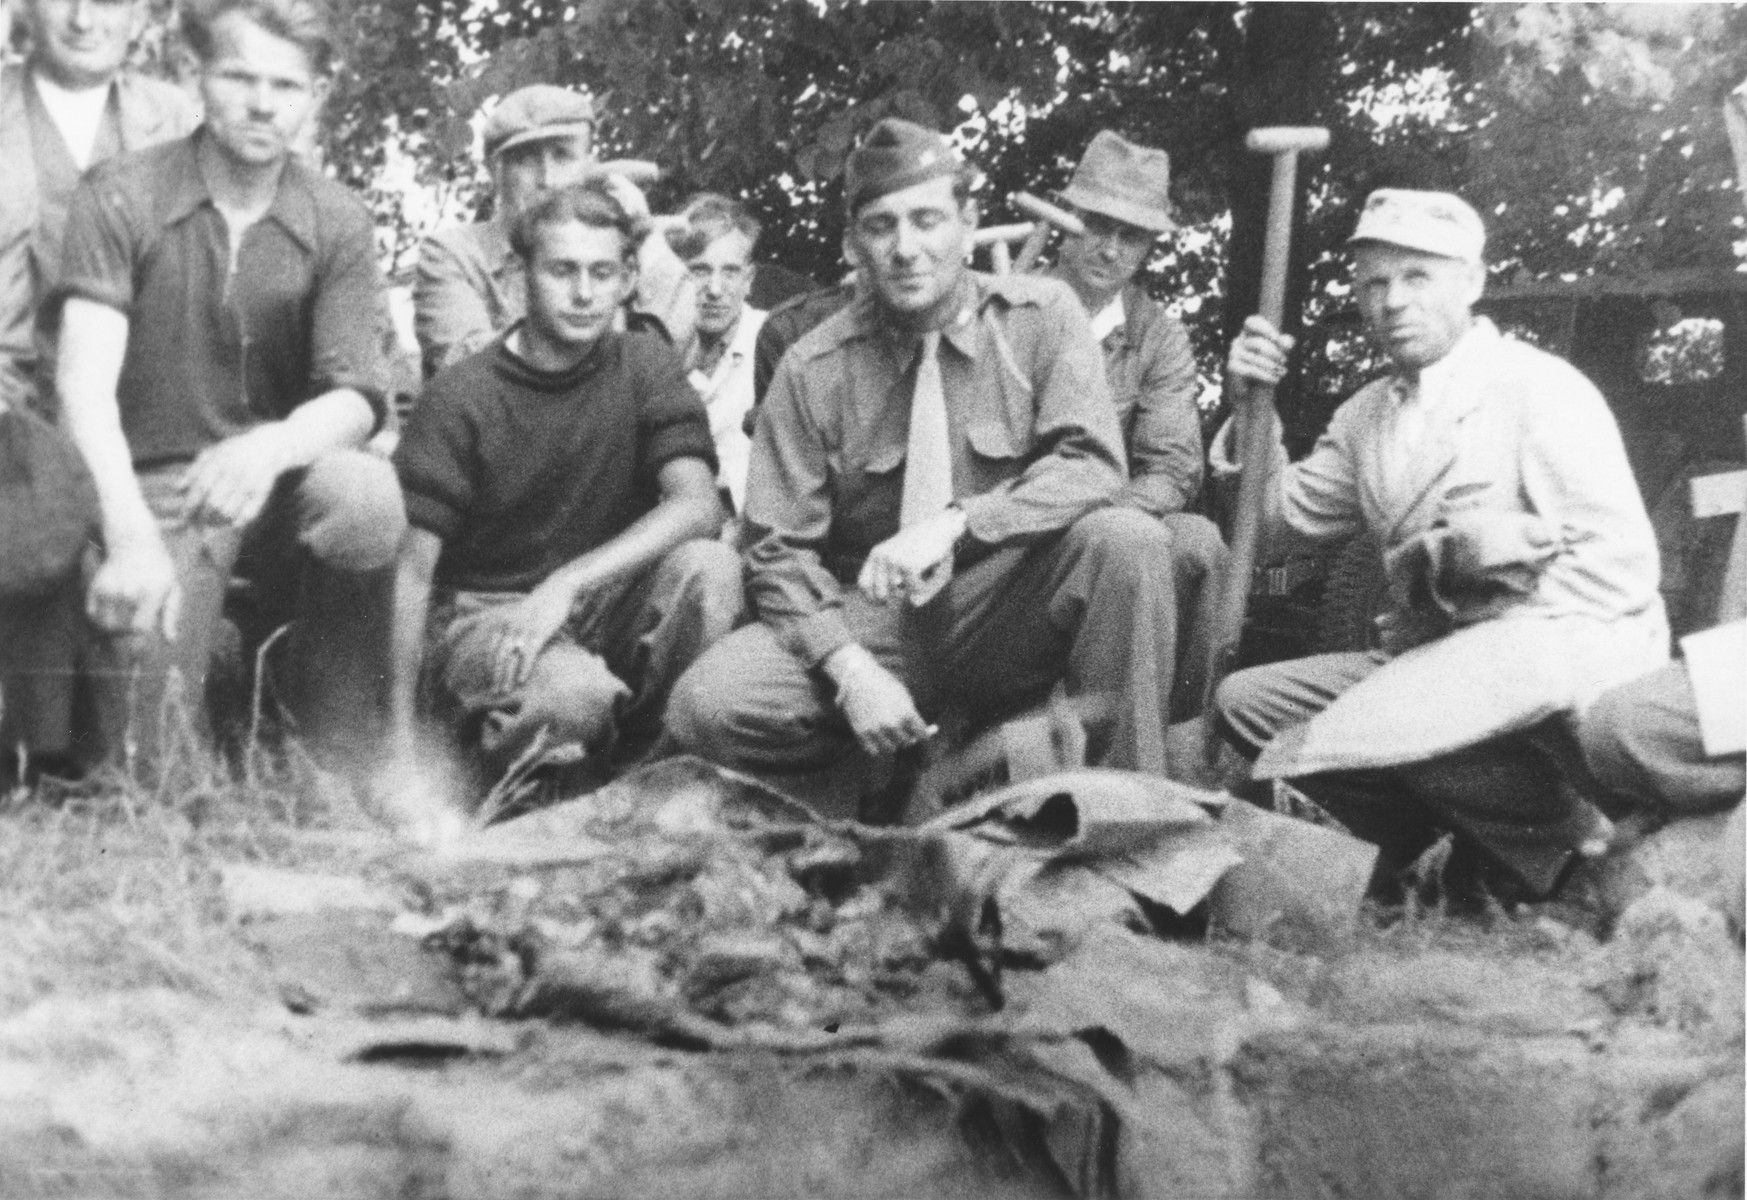 American soldiers examine the exhumed remains of the Polish and Soviet infants who died in the nursery in Ruehen.